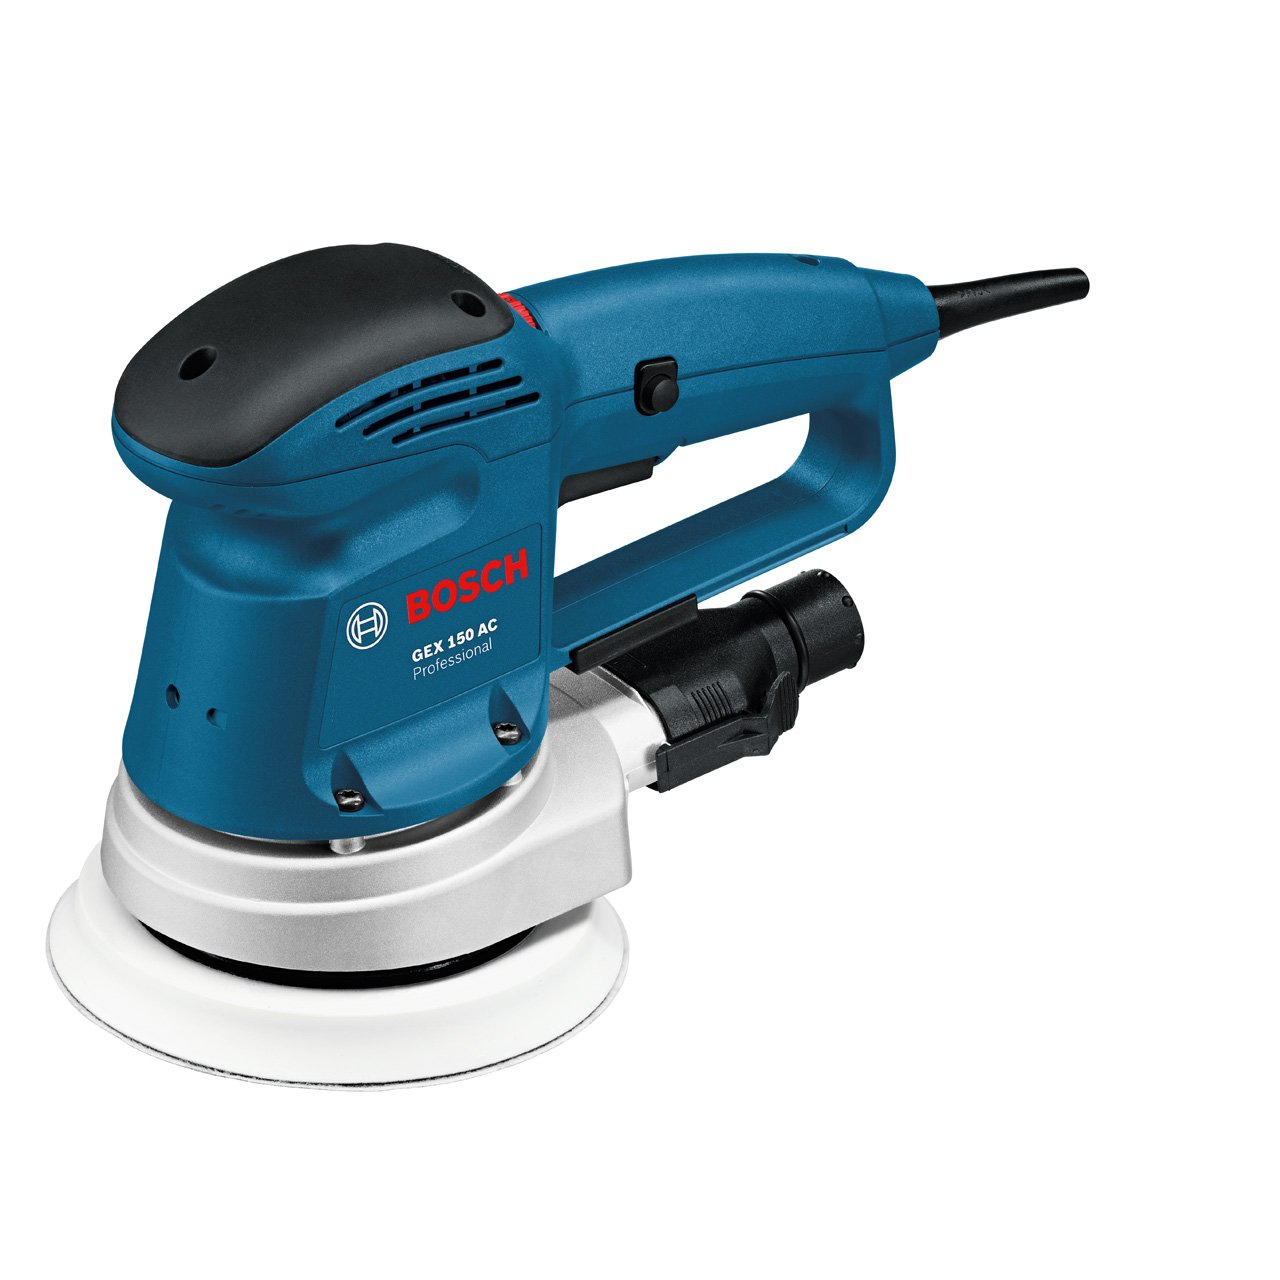 Bosch Professional 0601372768 Ponceuse excentrique GEX 150 AC